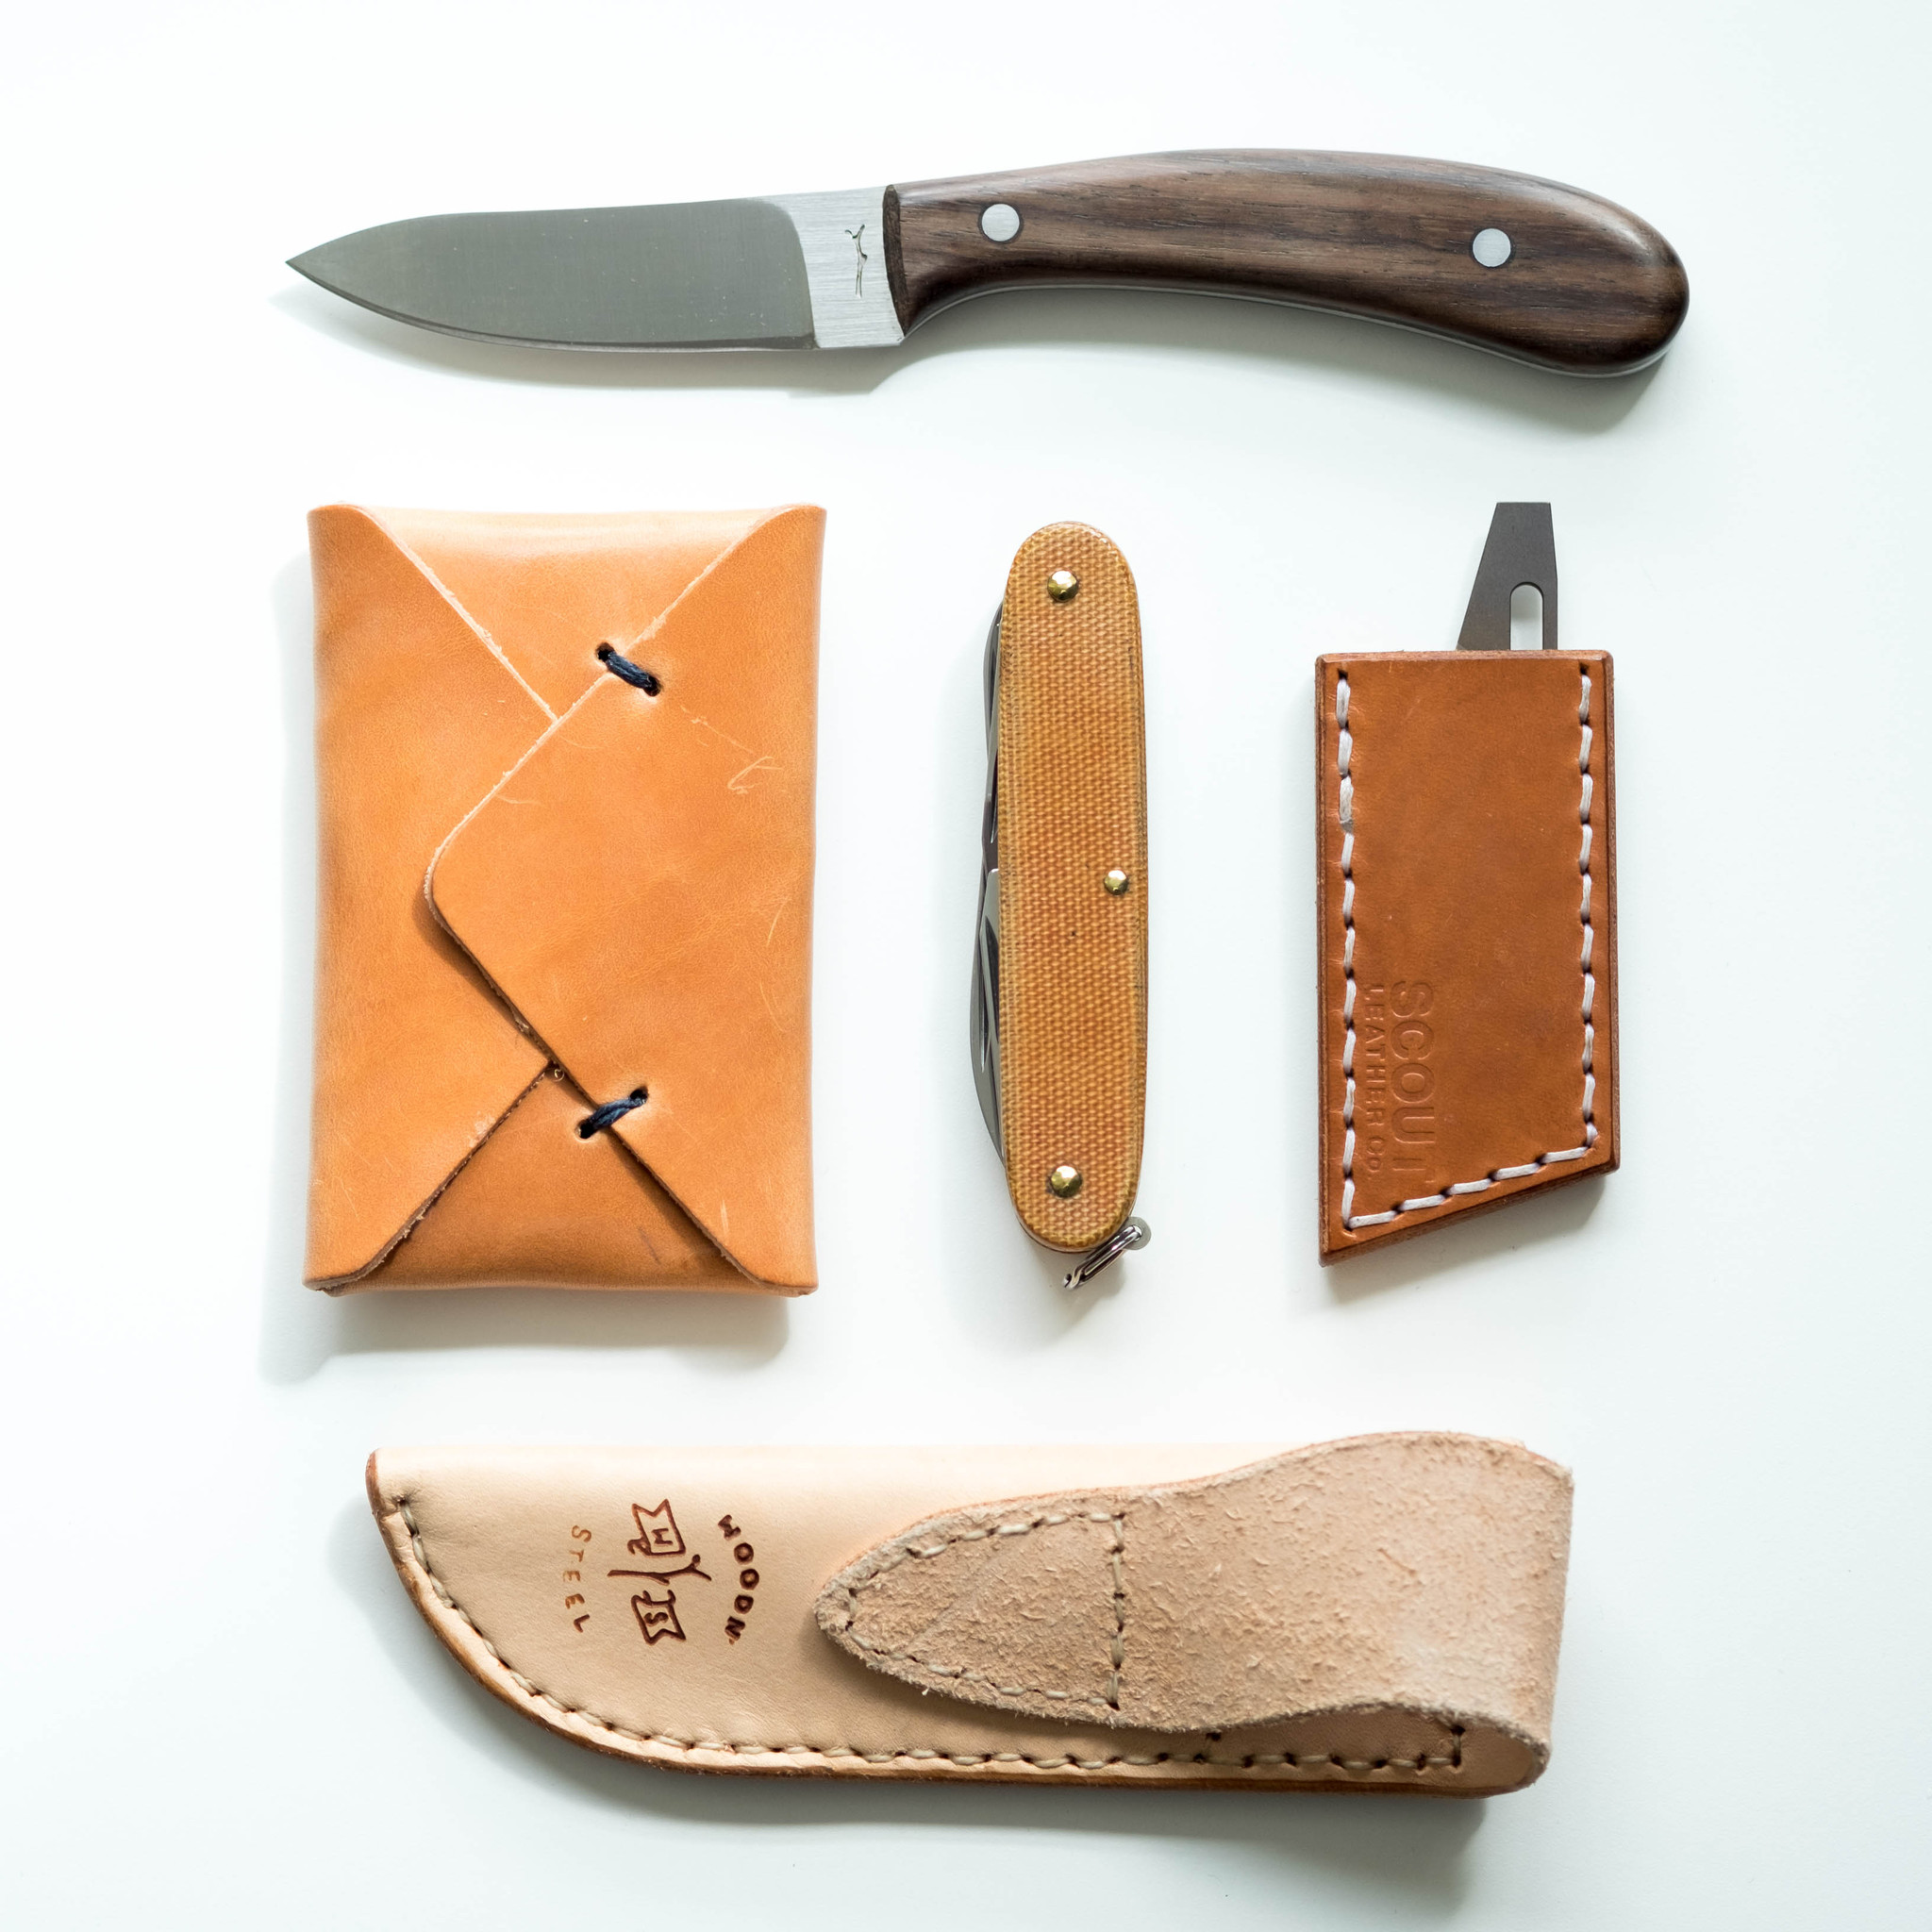 Scout Leather Co. Rexford R.U.T. Leather Sheath.